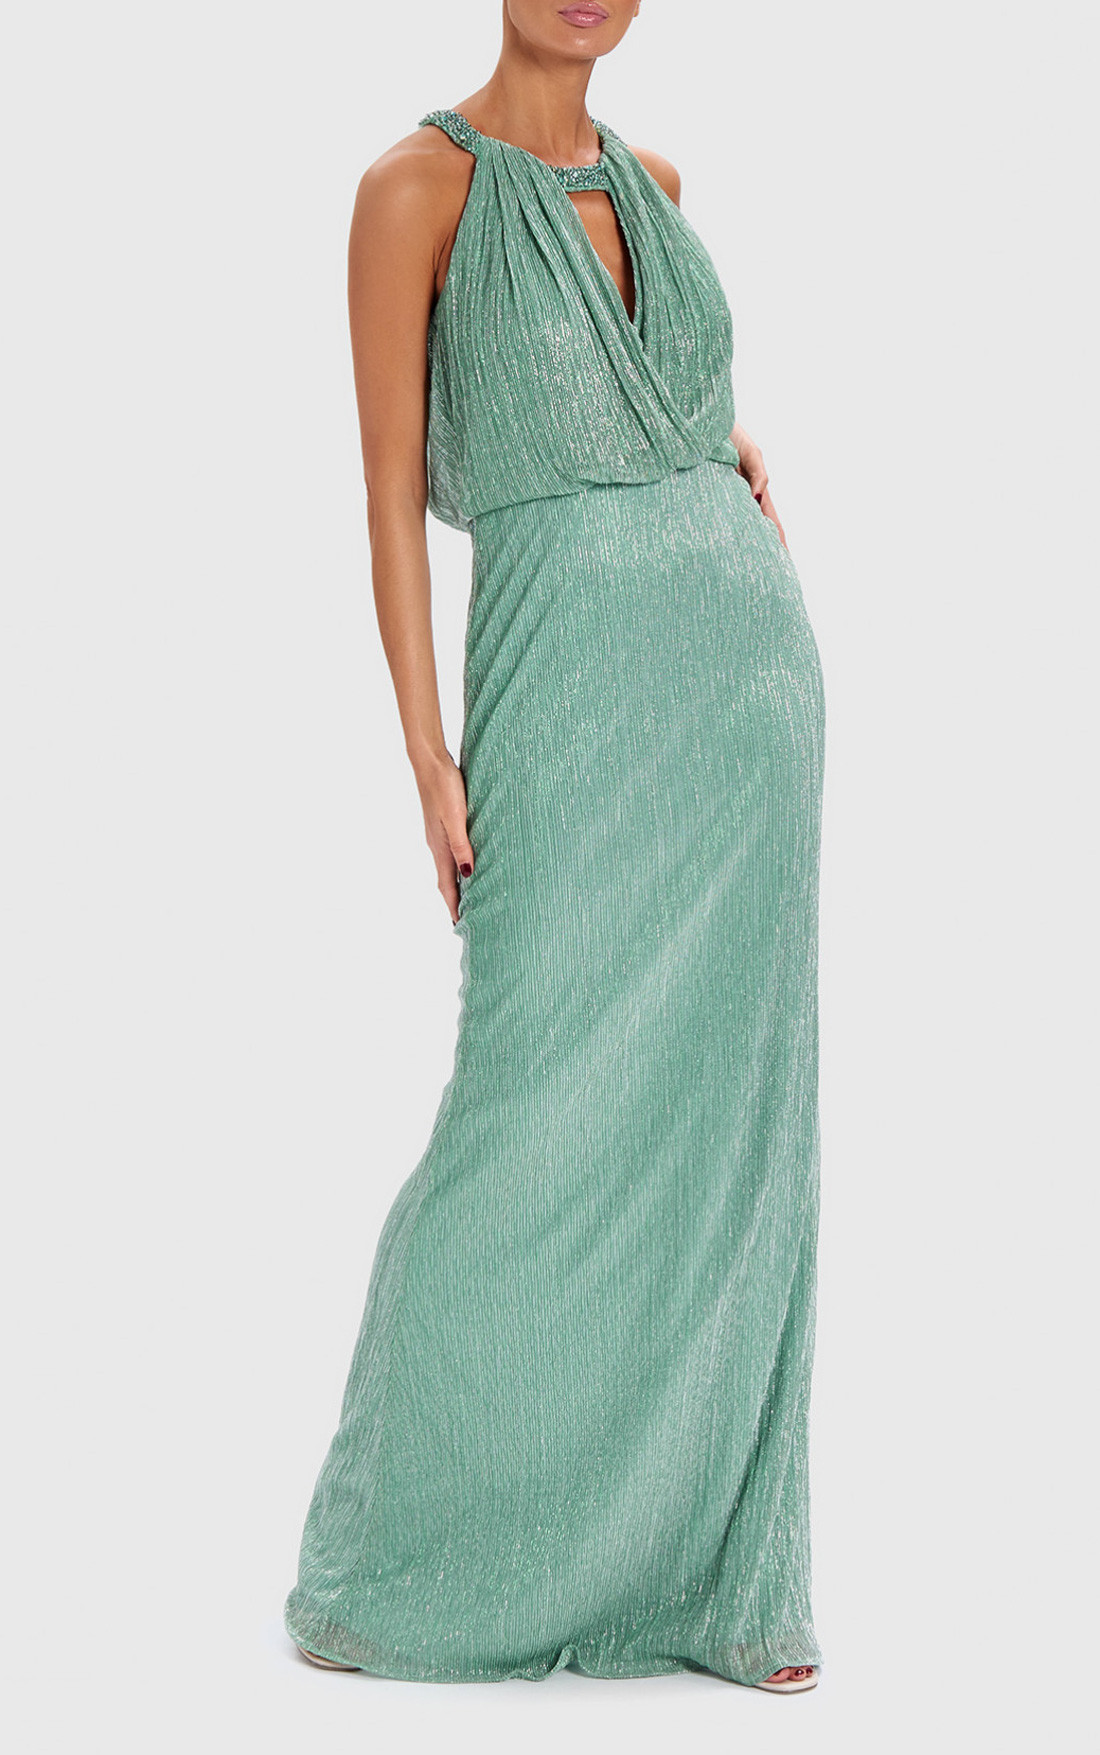 Forever Unique - Shimmer Mint Metallic Draped Maxi Dress (AB0922)